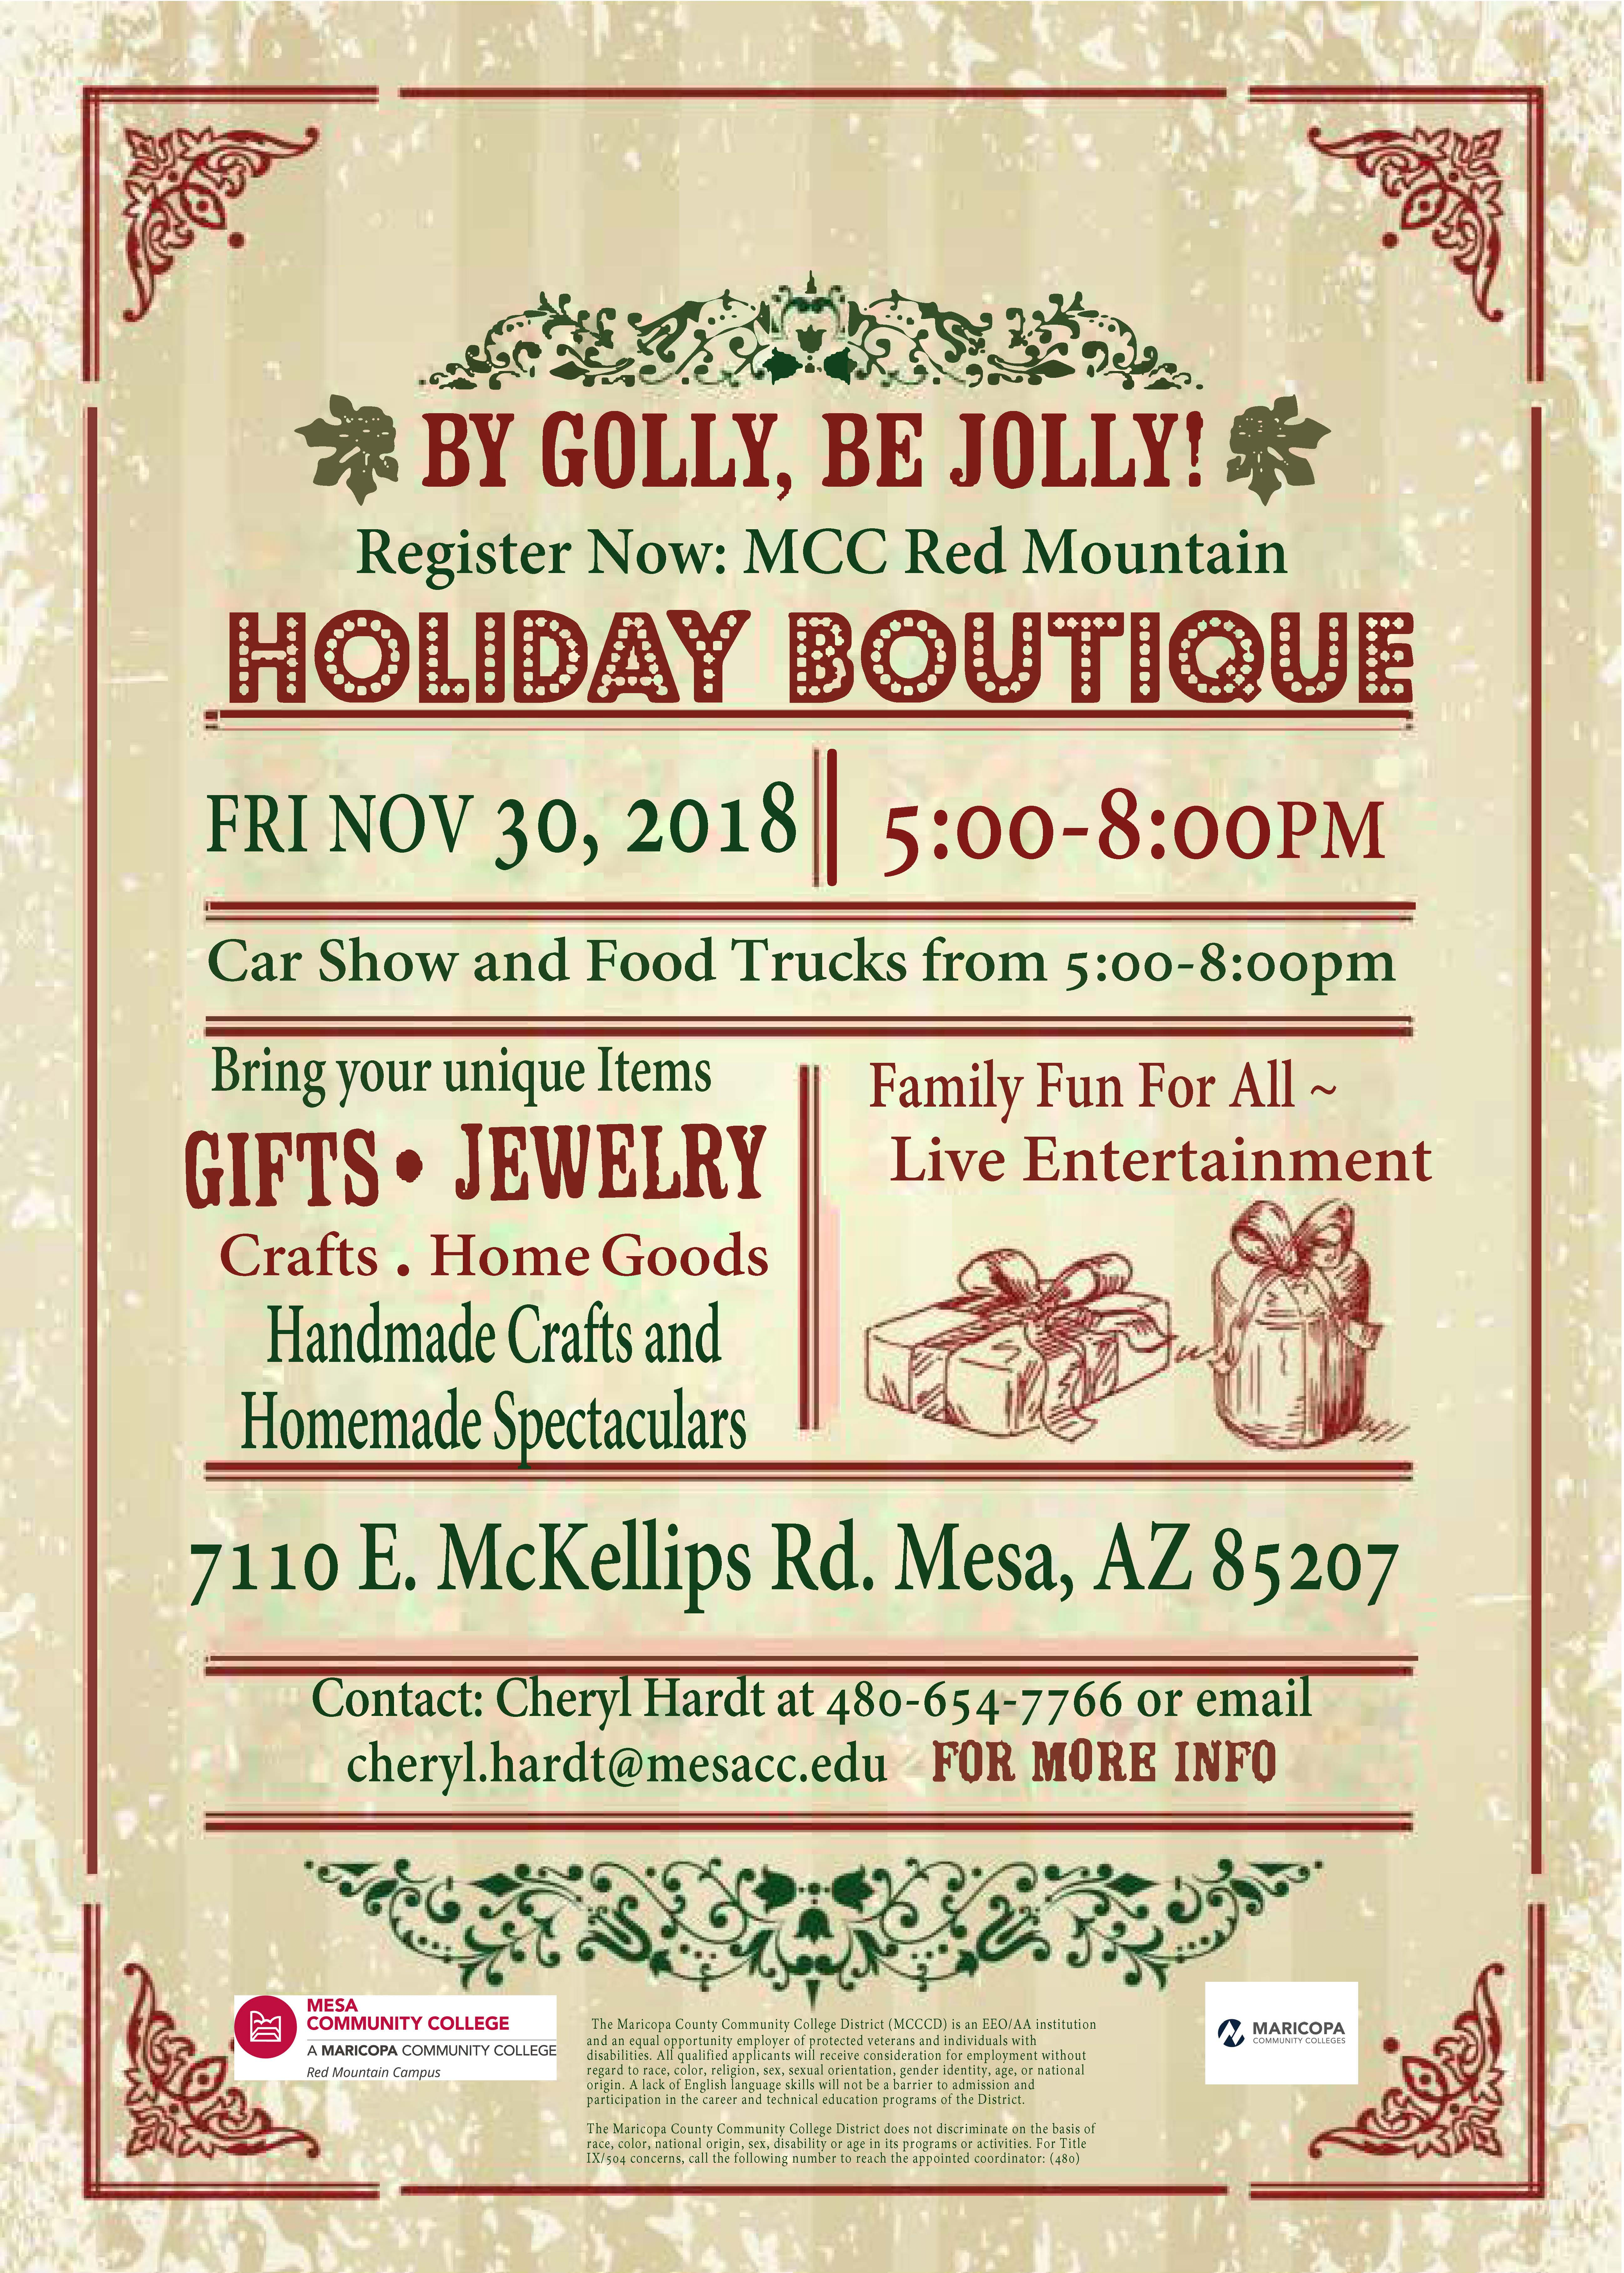 Lack Of College Disability Information >> Holiday Boutique And Car Show Events News Mesa Community College